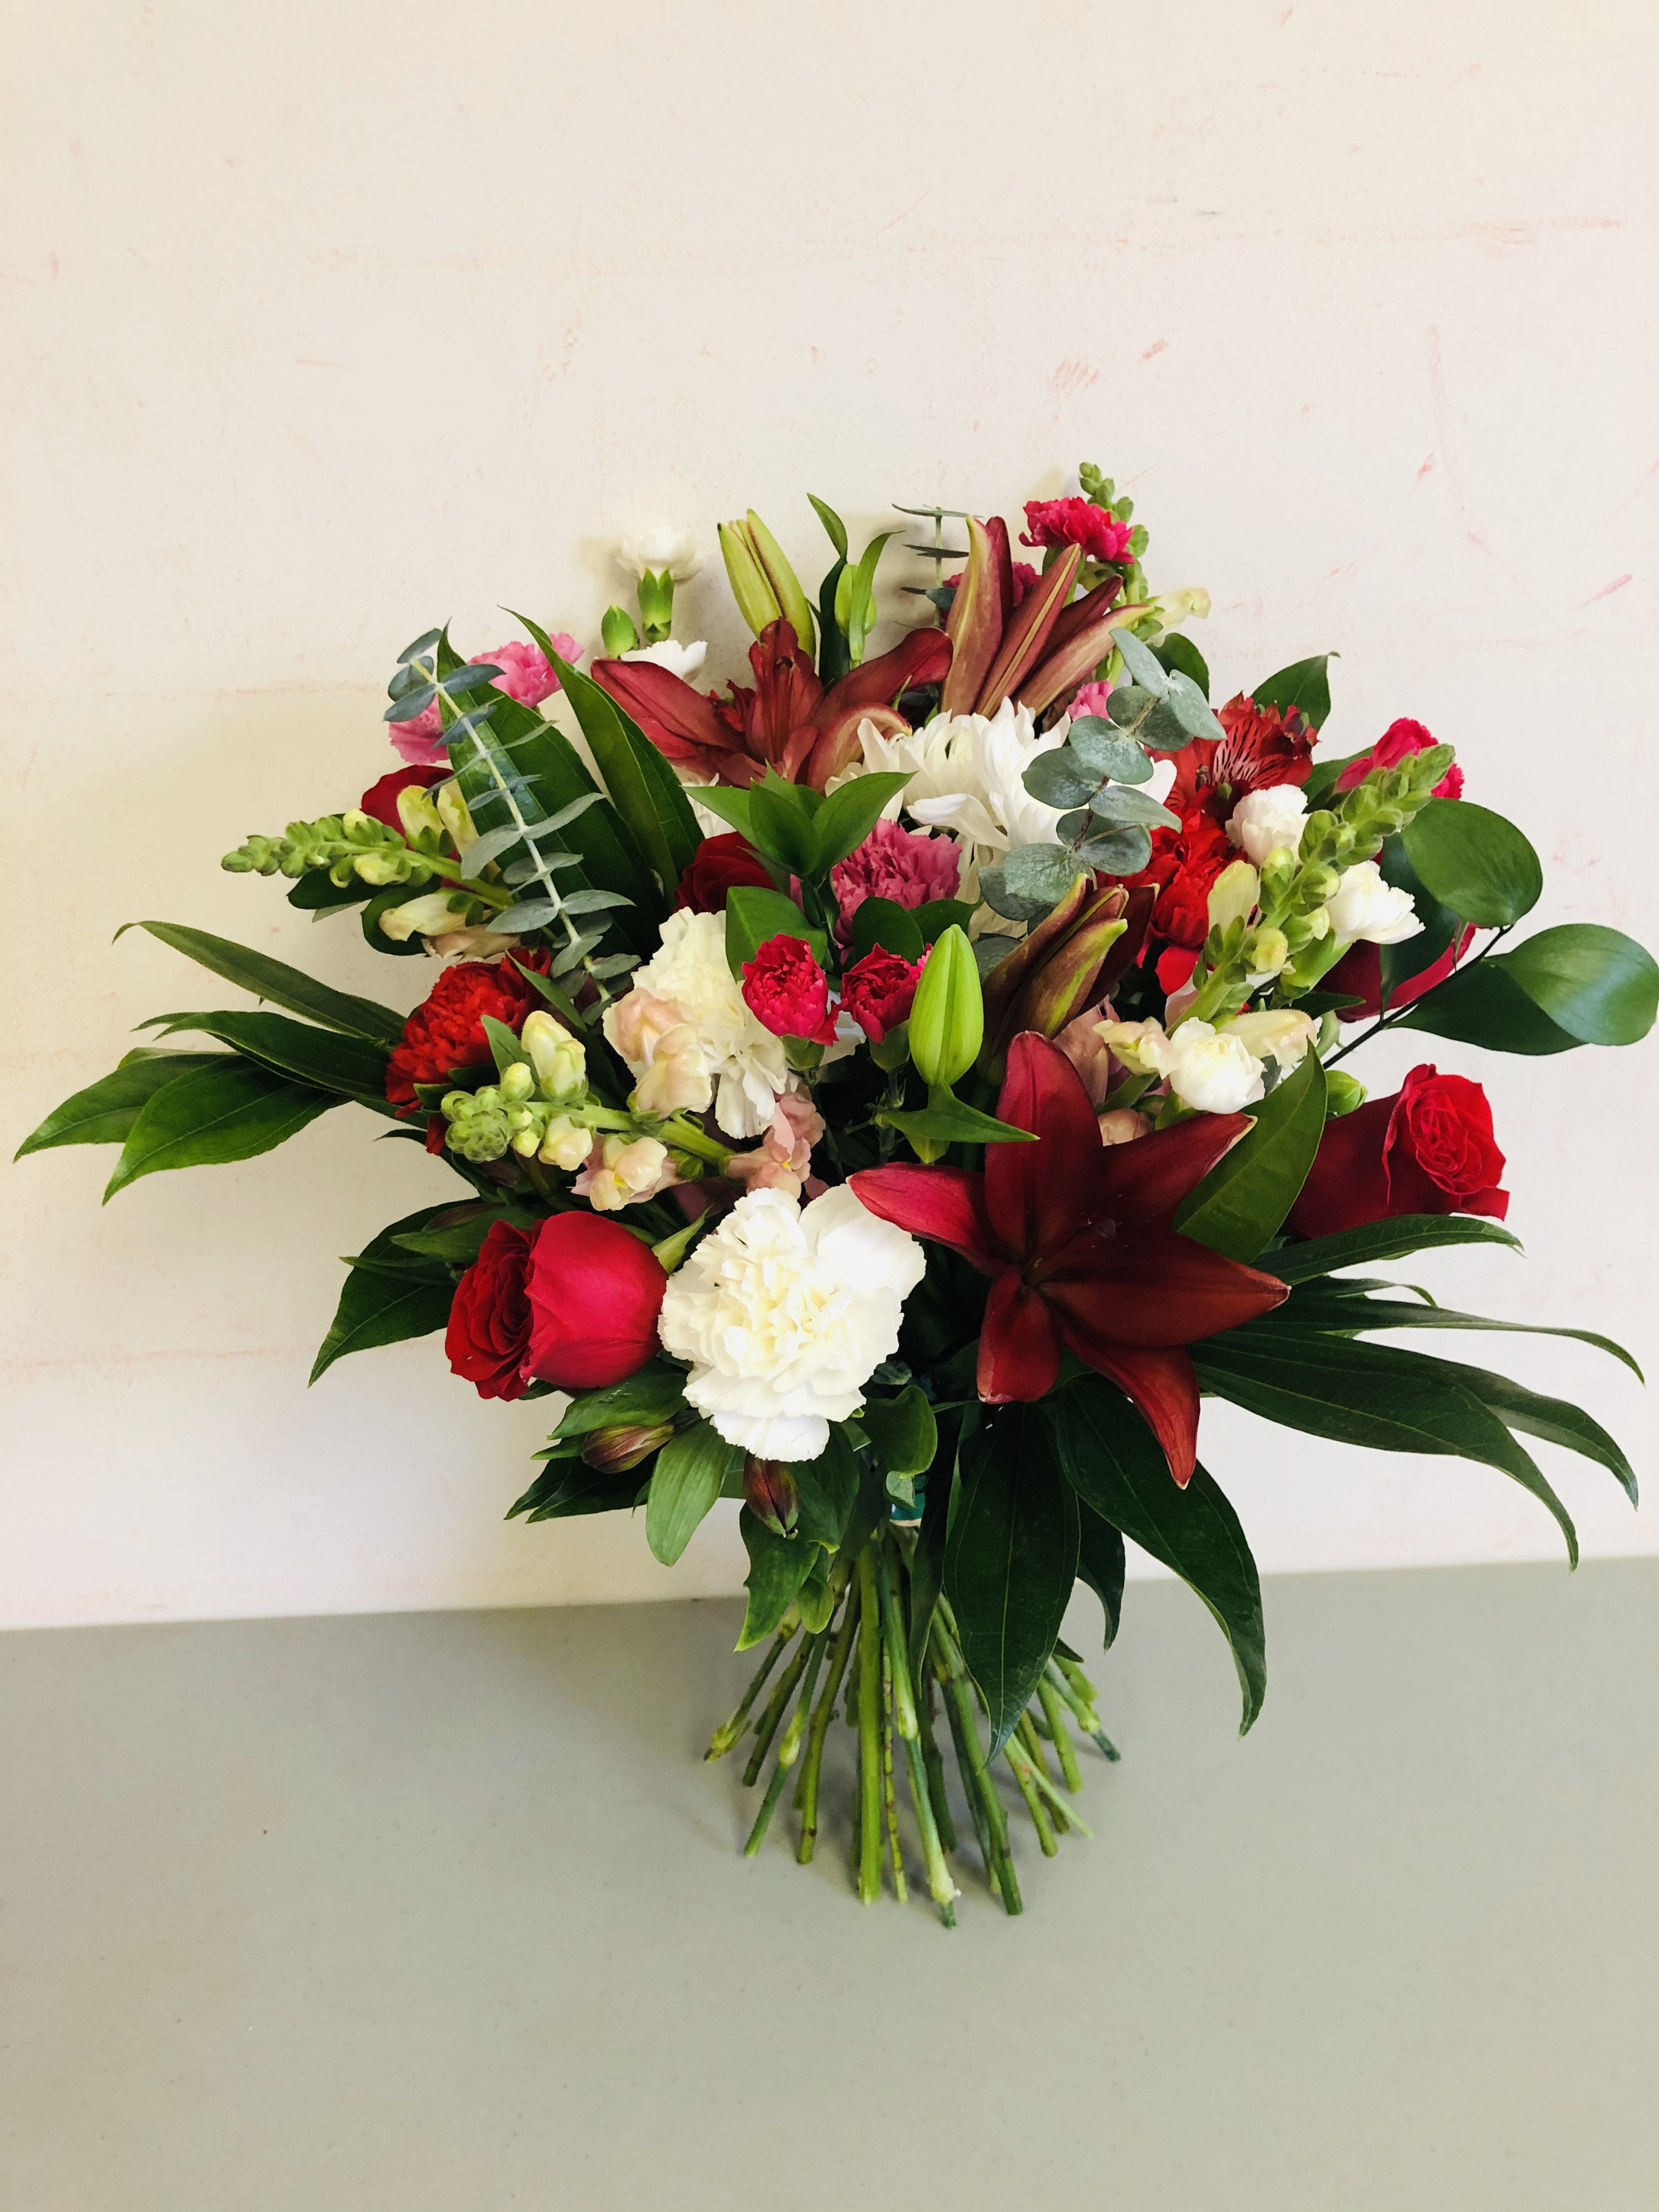 gorgeous_hand_tied_bouquet_uhwfz1.jpg